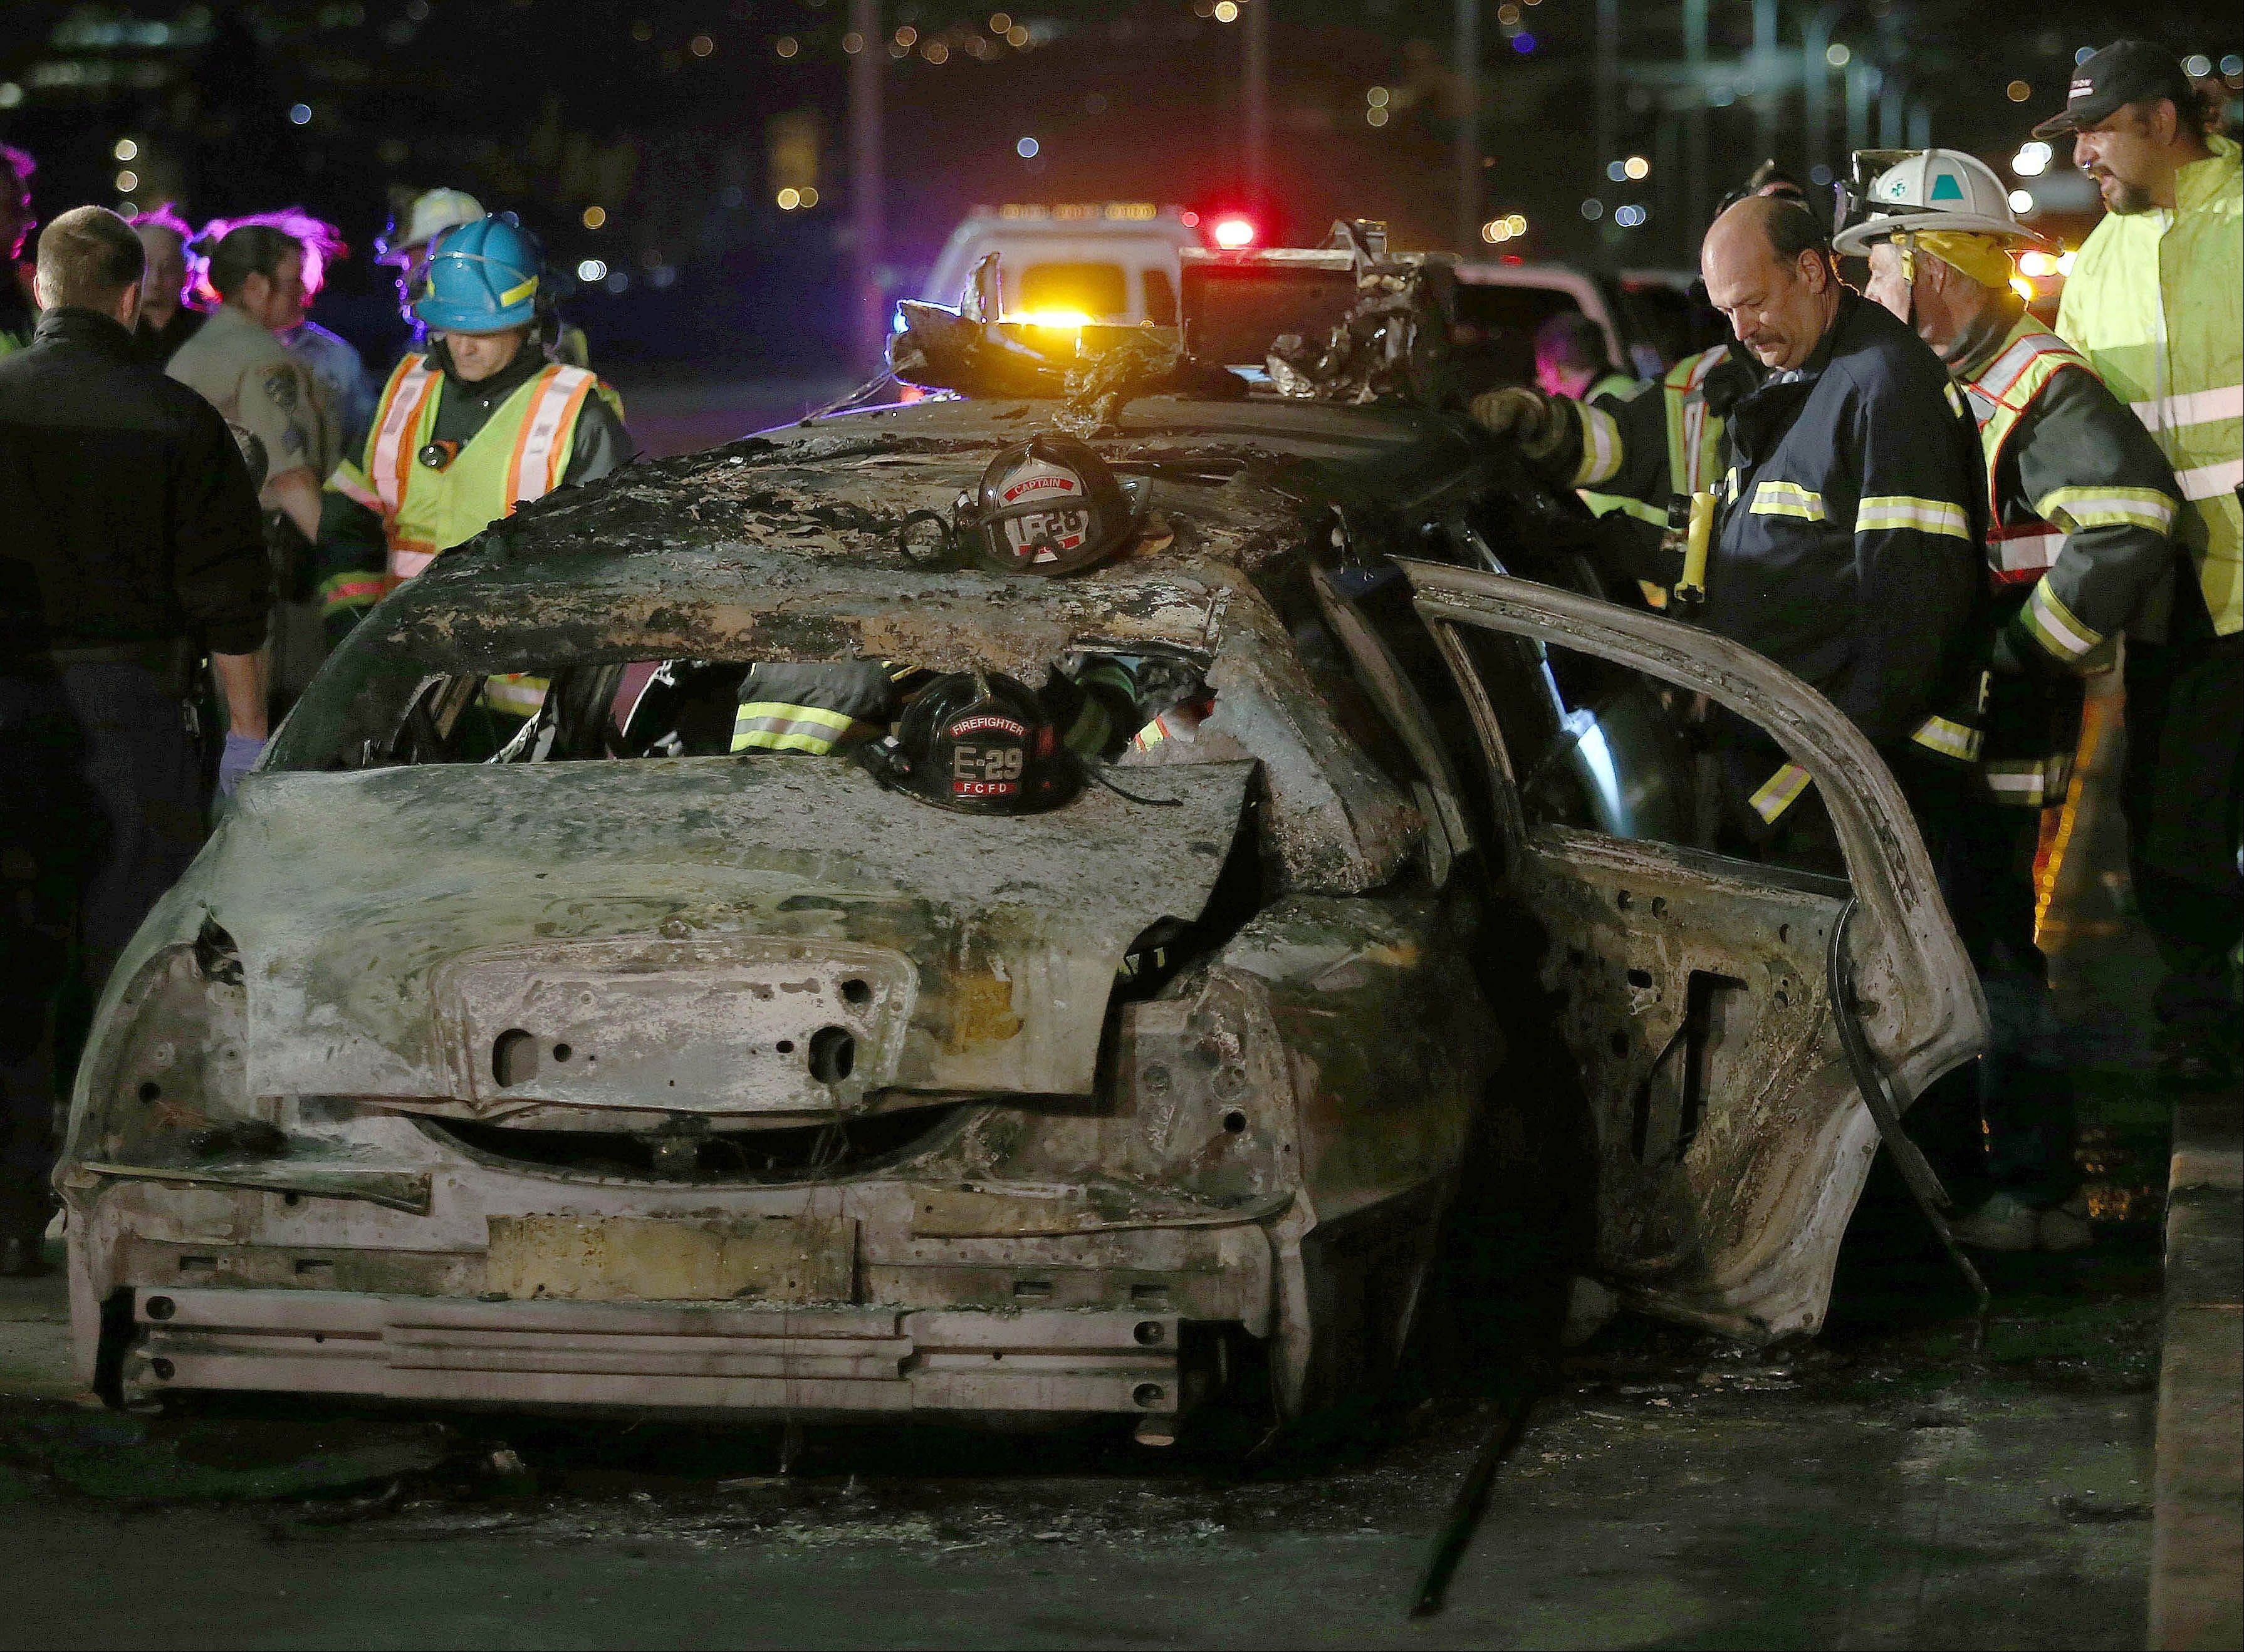 San Mateo County firefighters and California Highway Patrol personnel investigate the scene of a limousine fire on the westbound side of the San Mateo-Hayward Bridge in Foster City, Calif., on Saturday night. Five people died when they were trapped in the limo that caught fire as they were traveling, and four others and the driver were able to escape, according to the Oakland Tribune-Bay Area News Group.